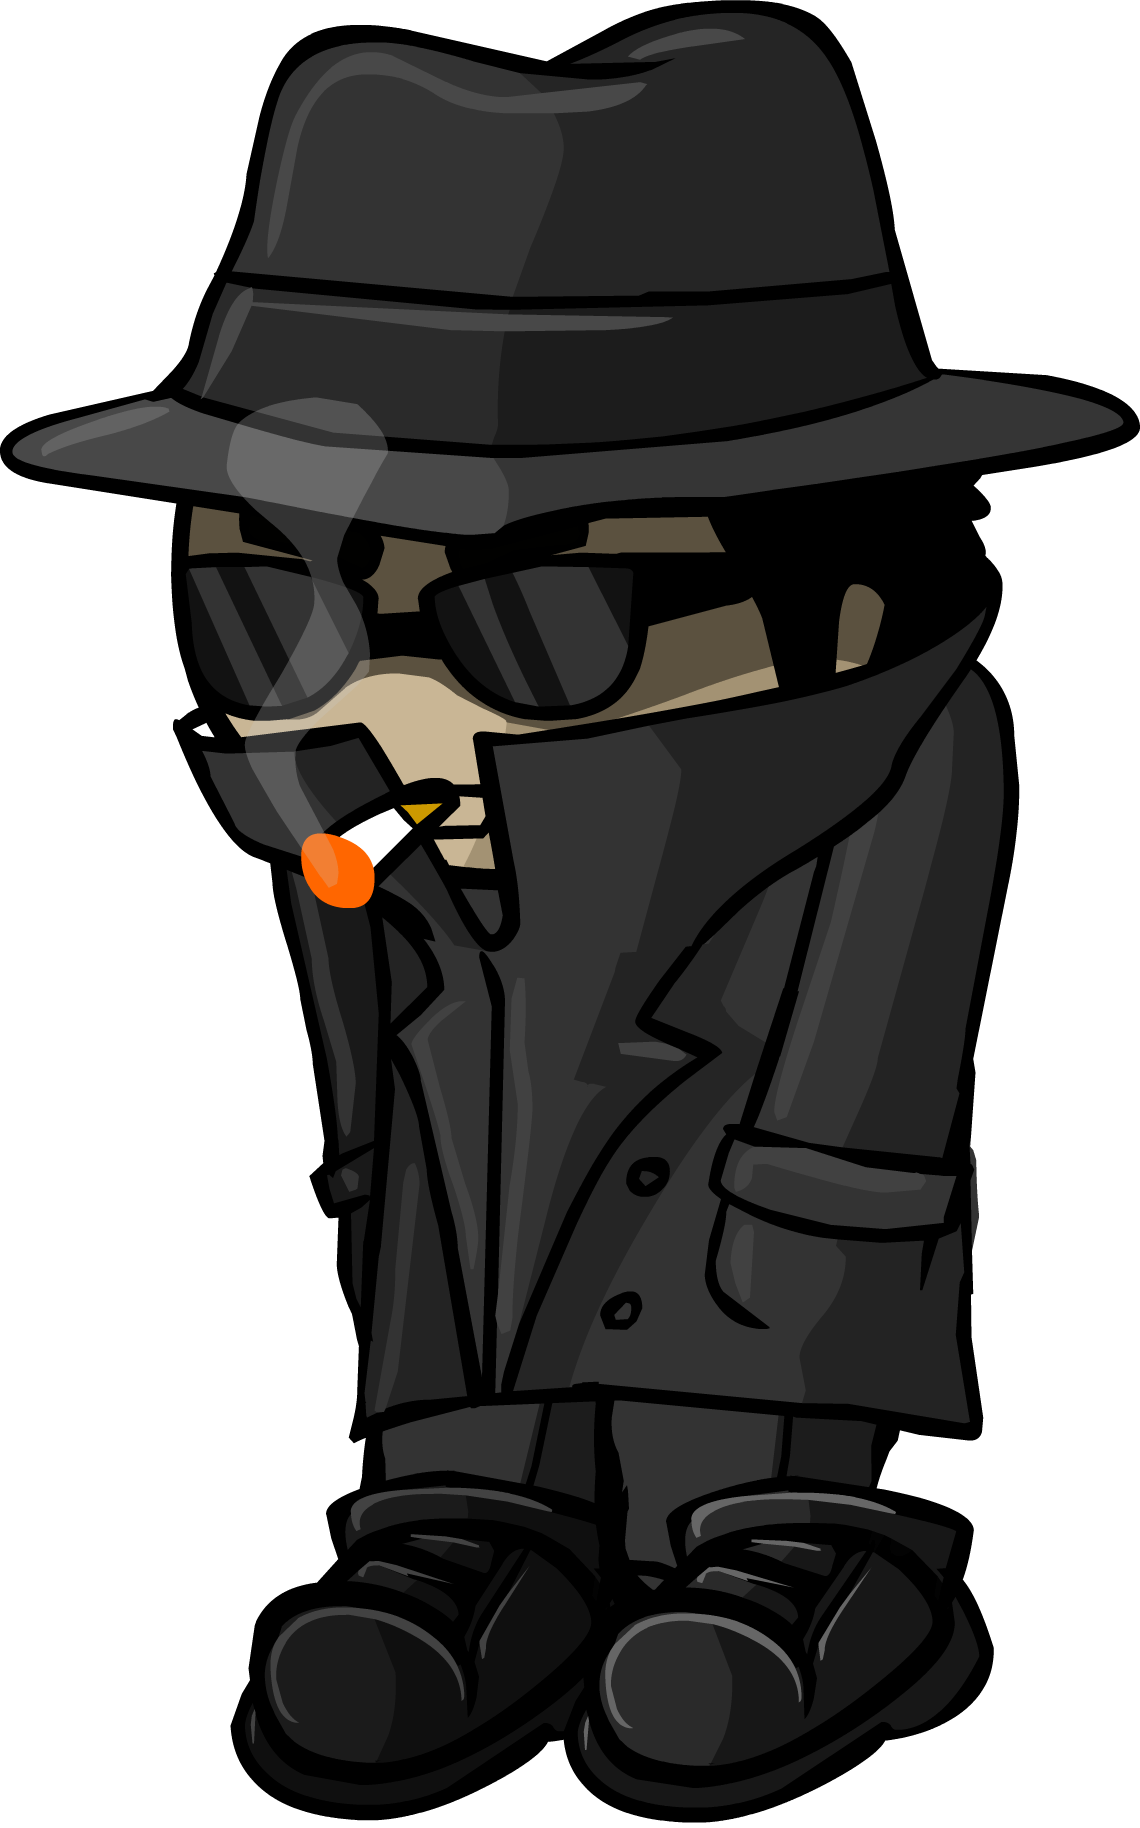 Spy clipart computer security. Spytech software monitoring solutions